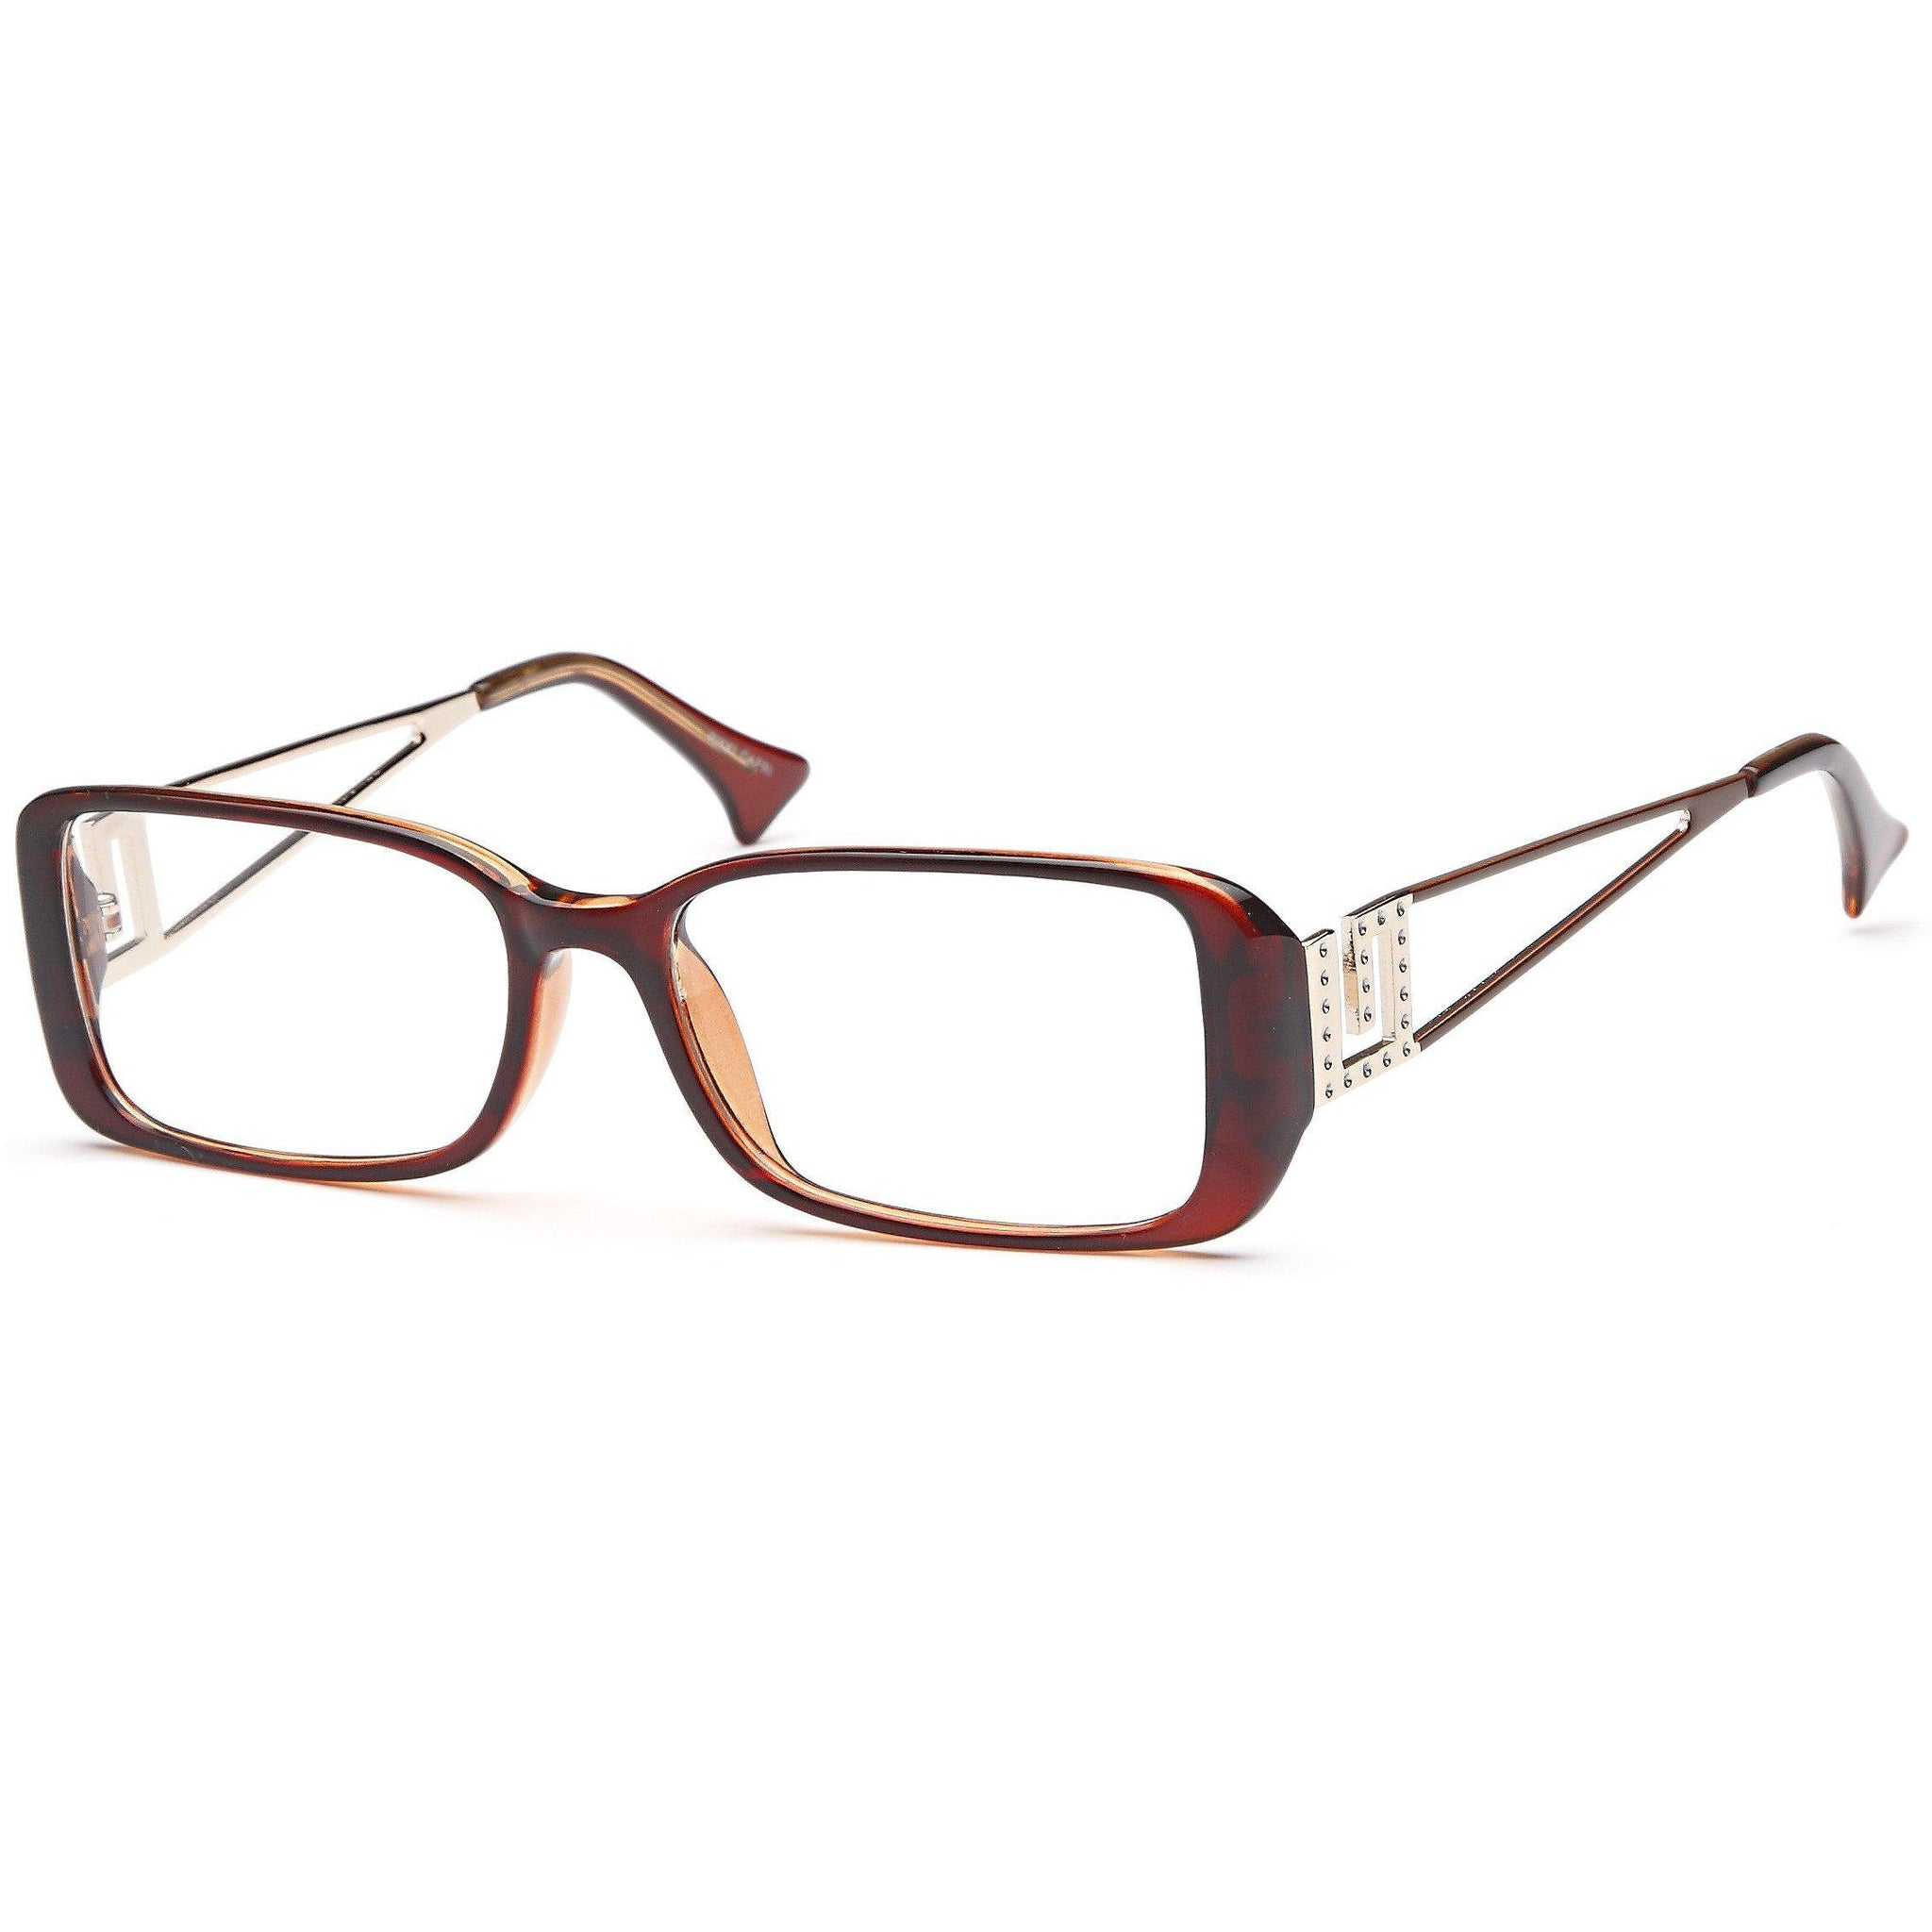 Everyday Prescription Glasses RIKKI Frame